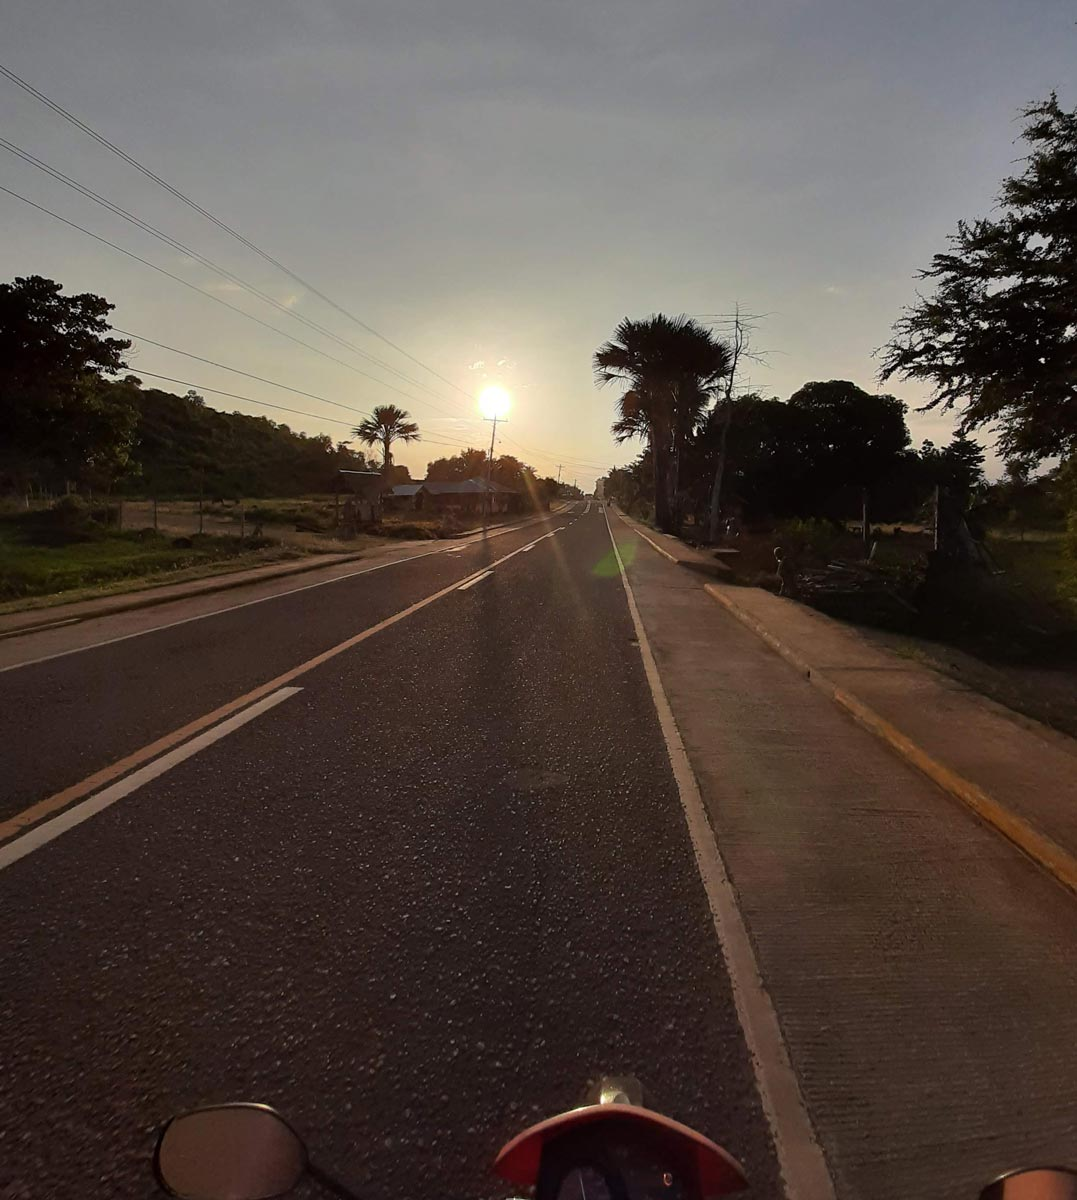 Riding into the sunset in Siquijor on a motorcycle